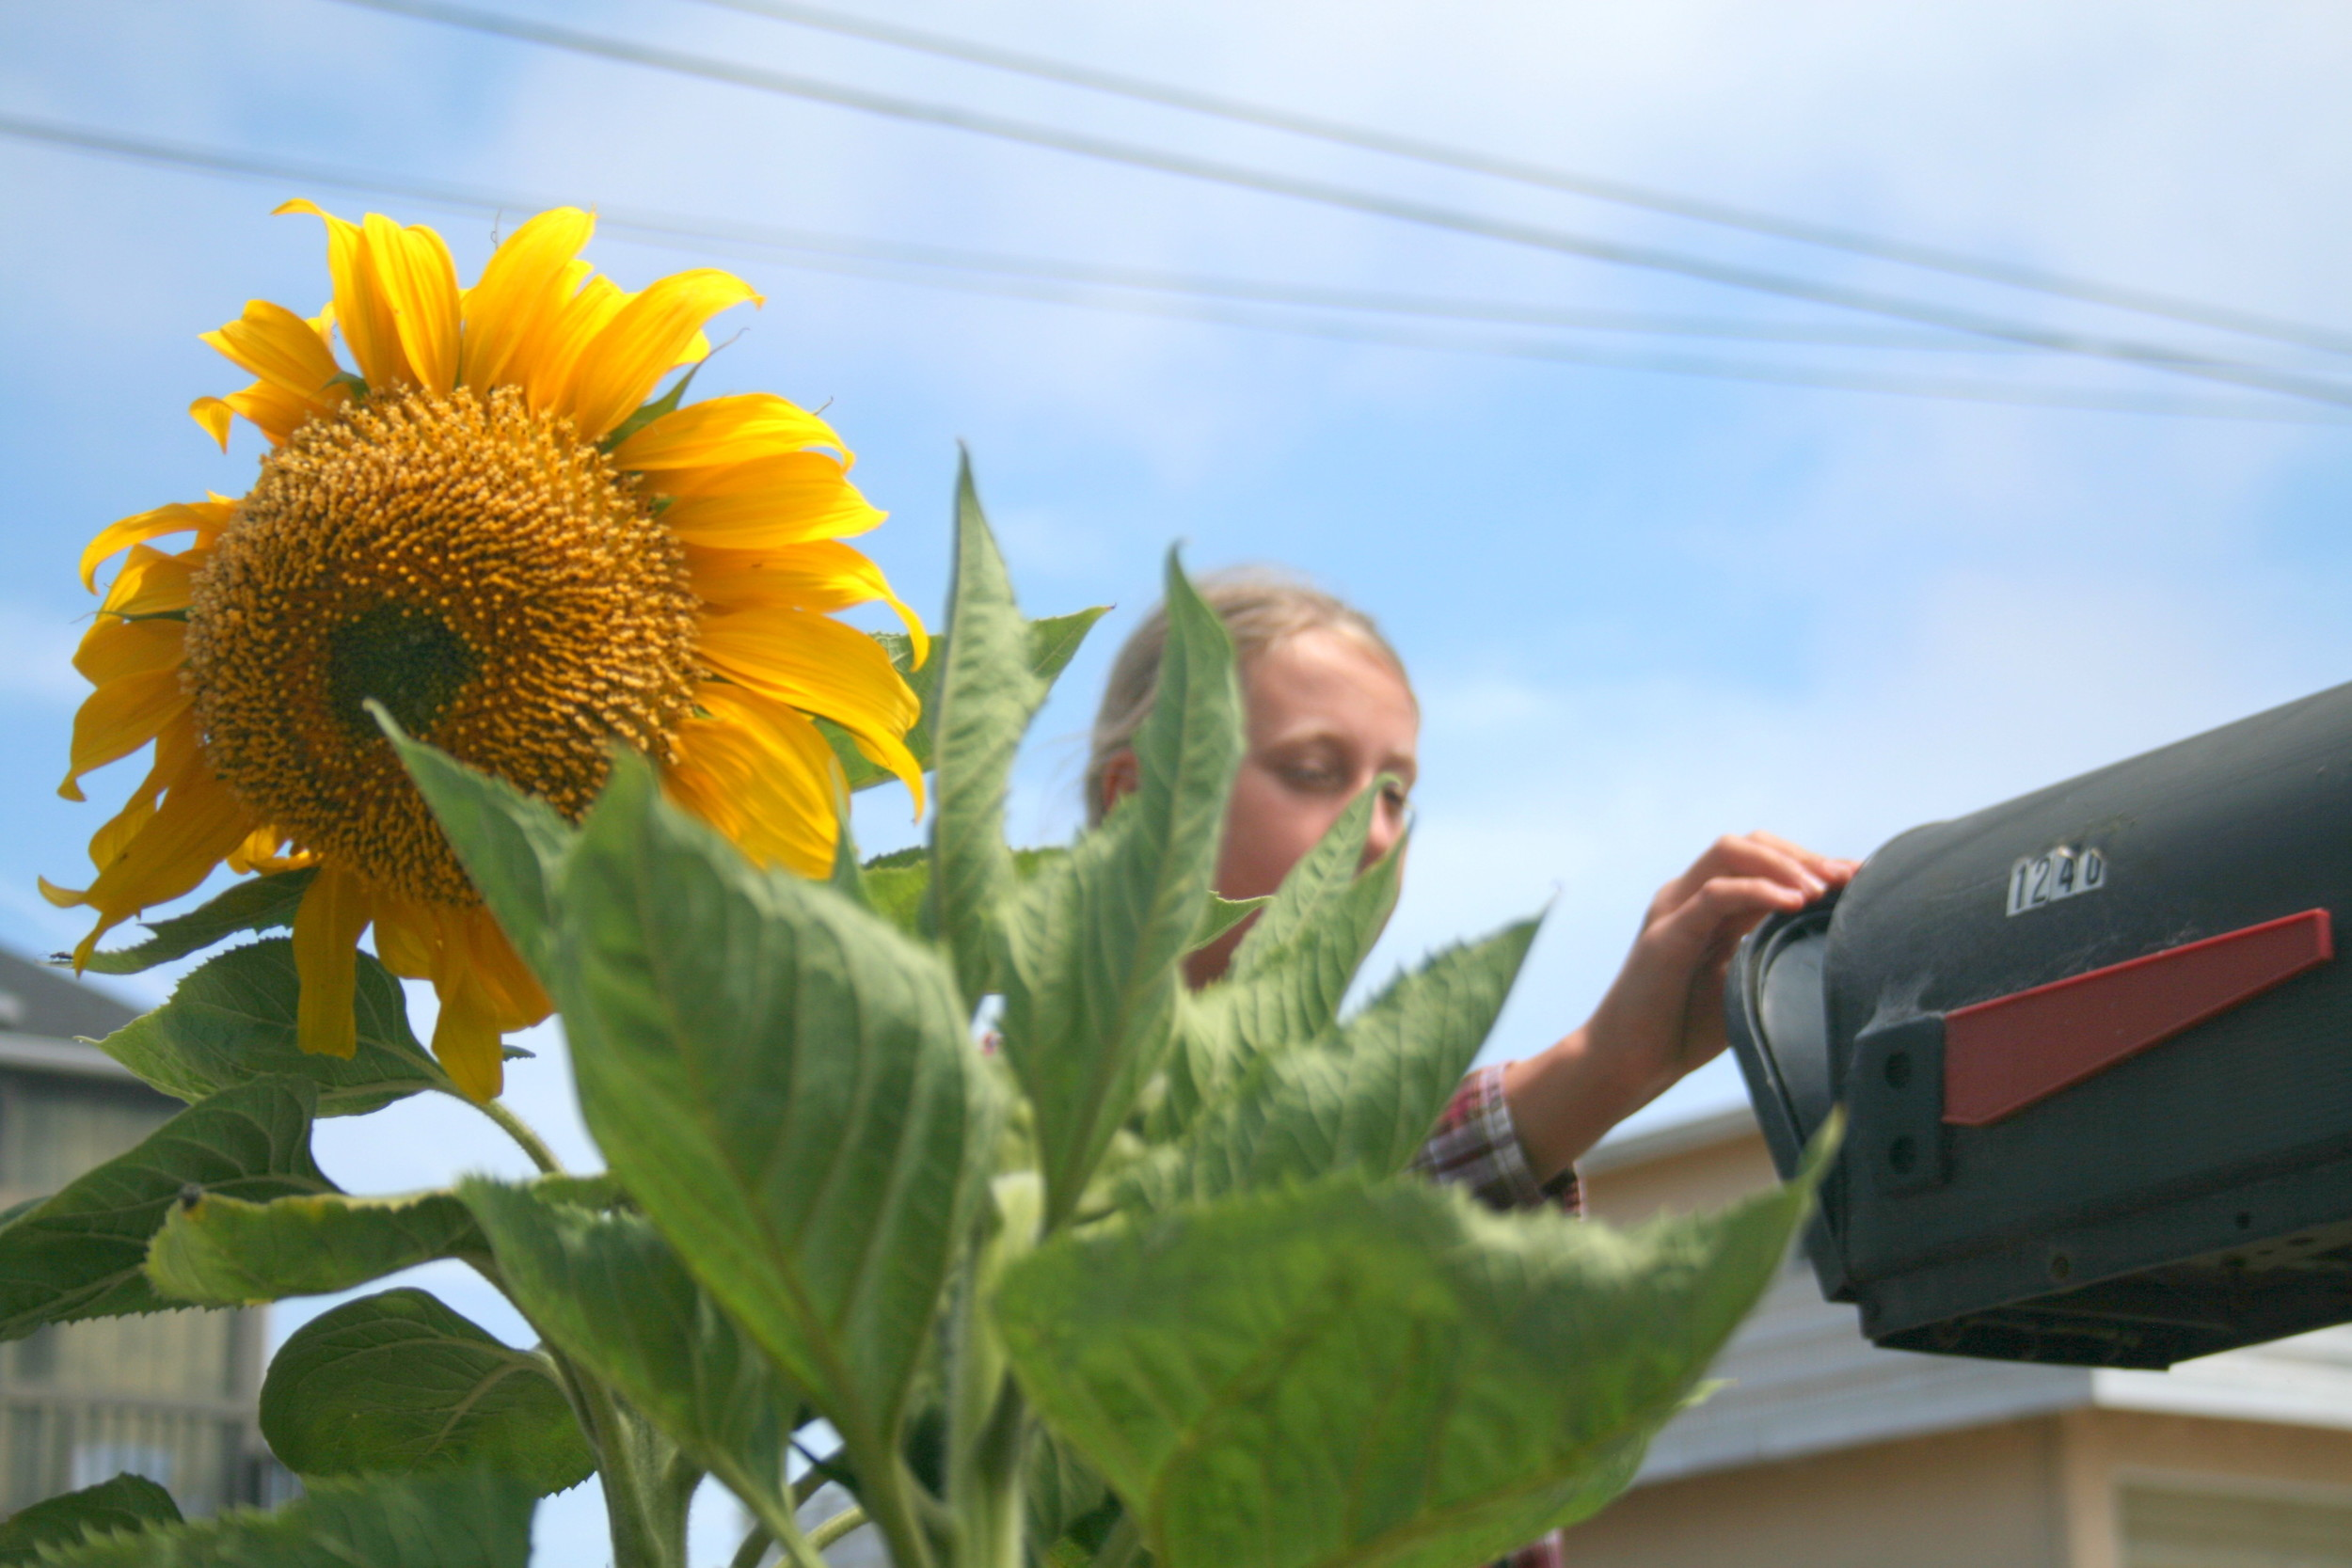 happy sunflower by the mailbox